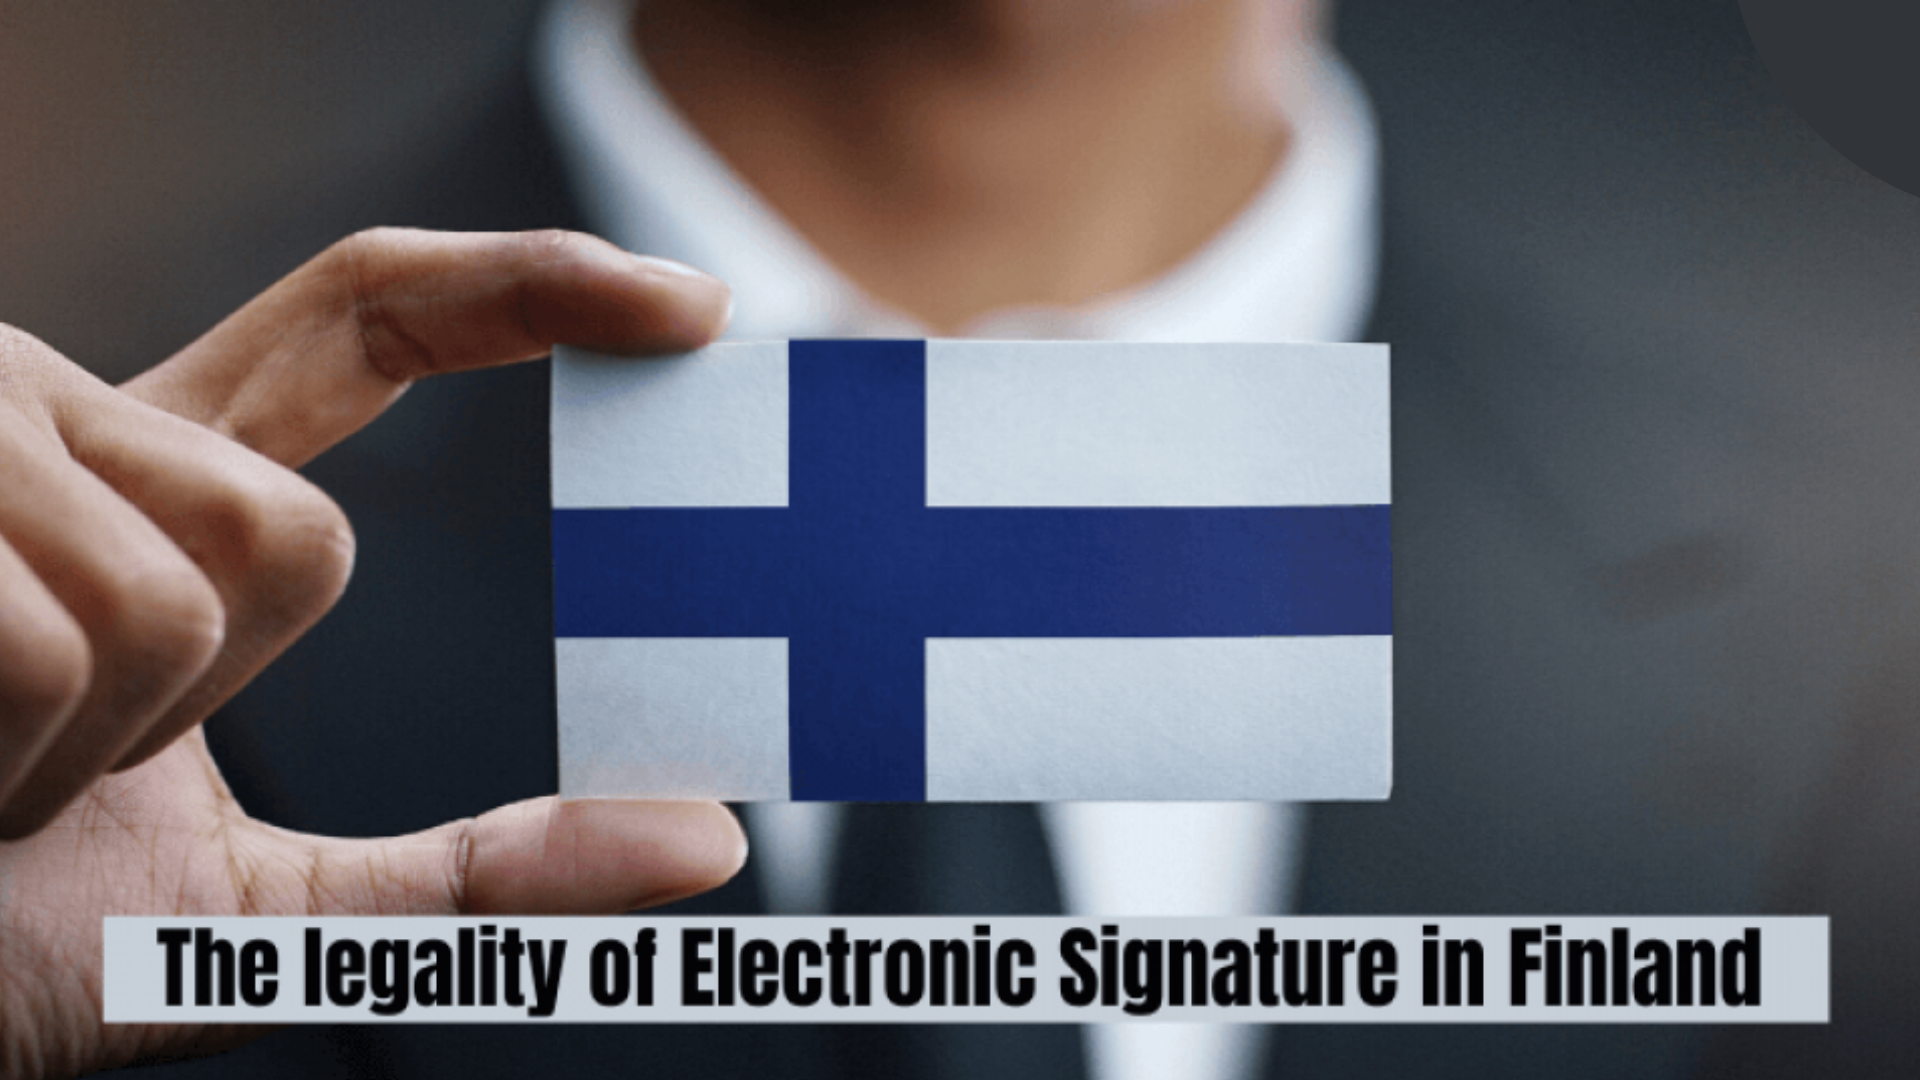 The Legality of Electronic Signatures in Finland